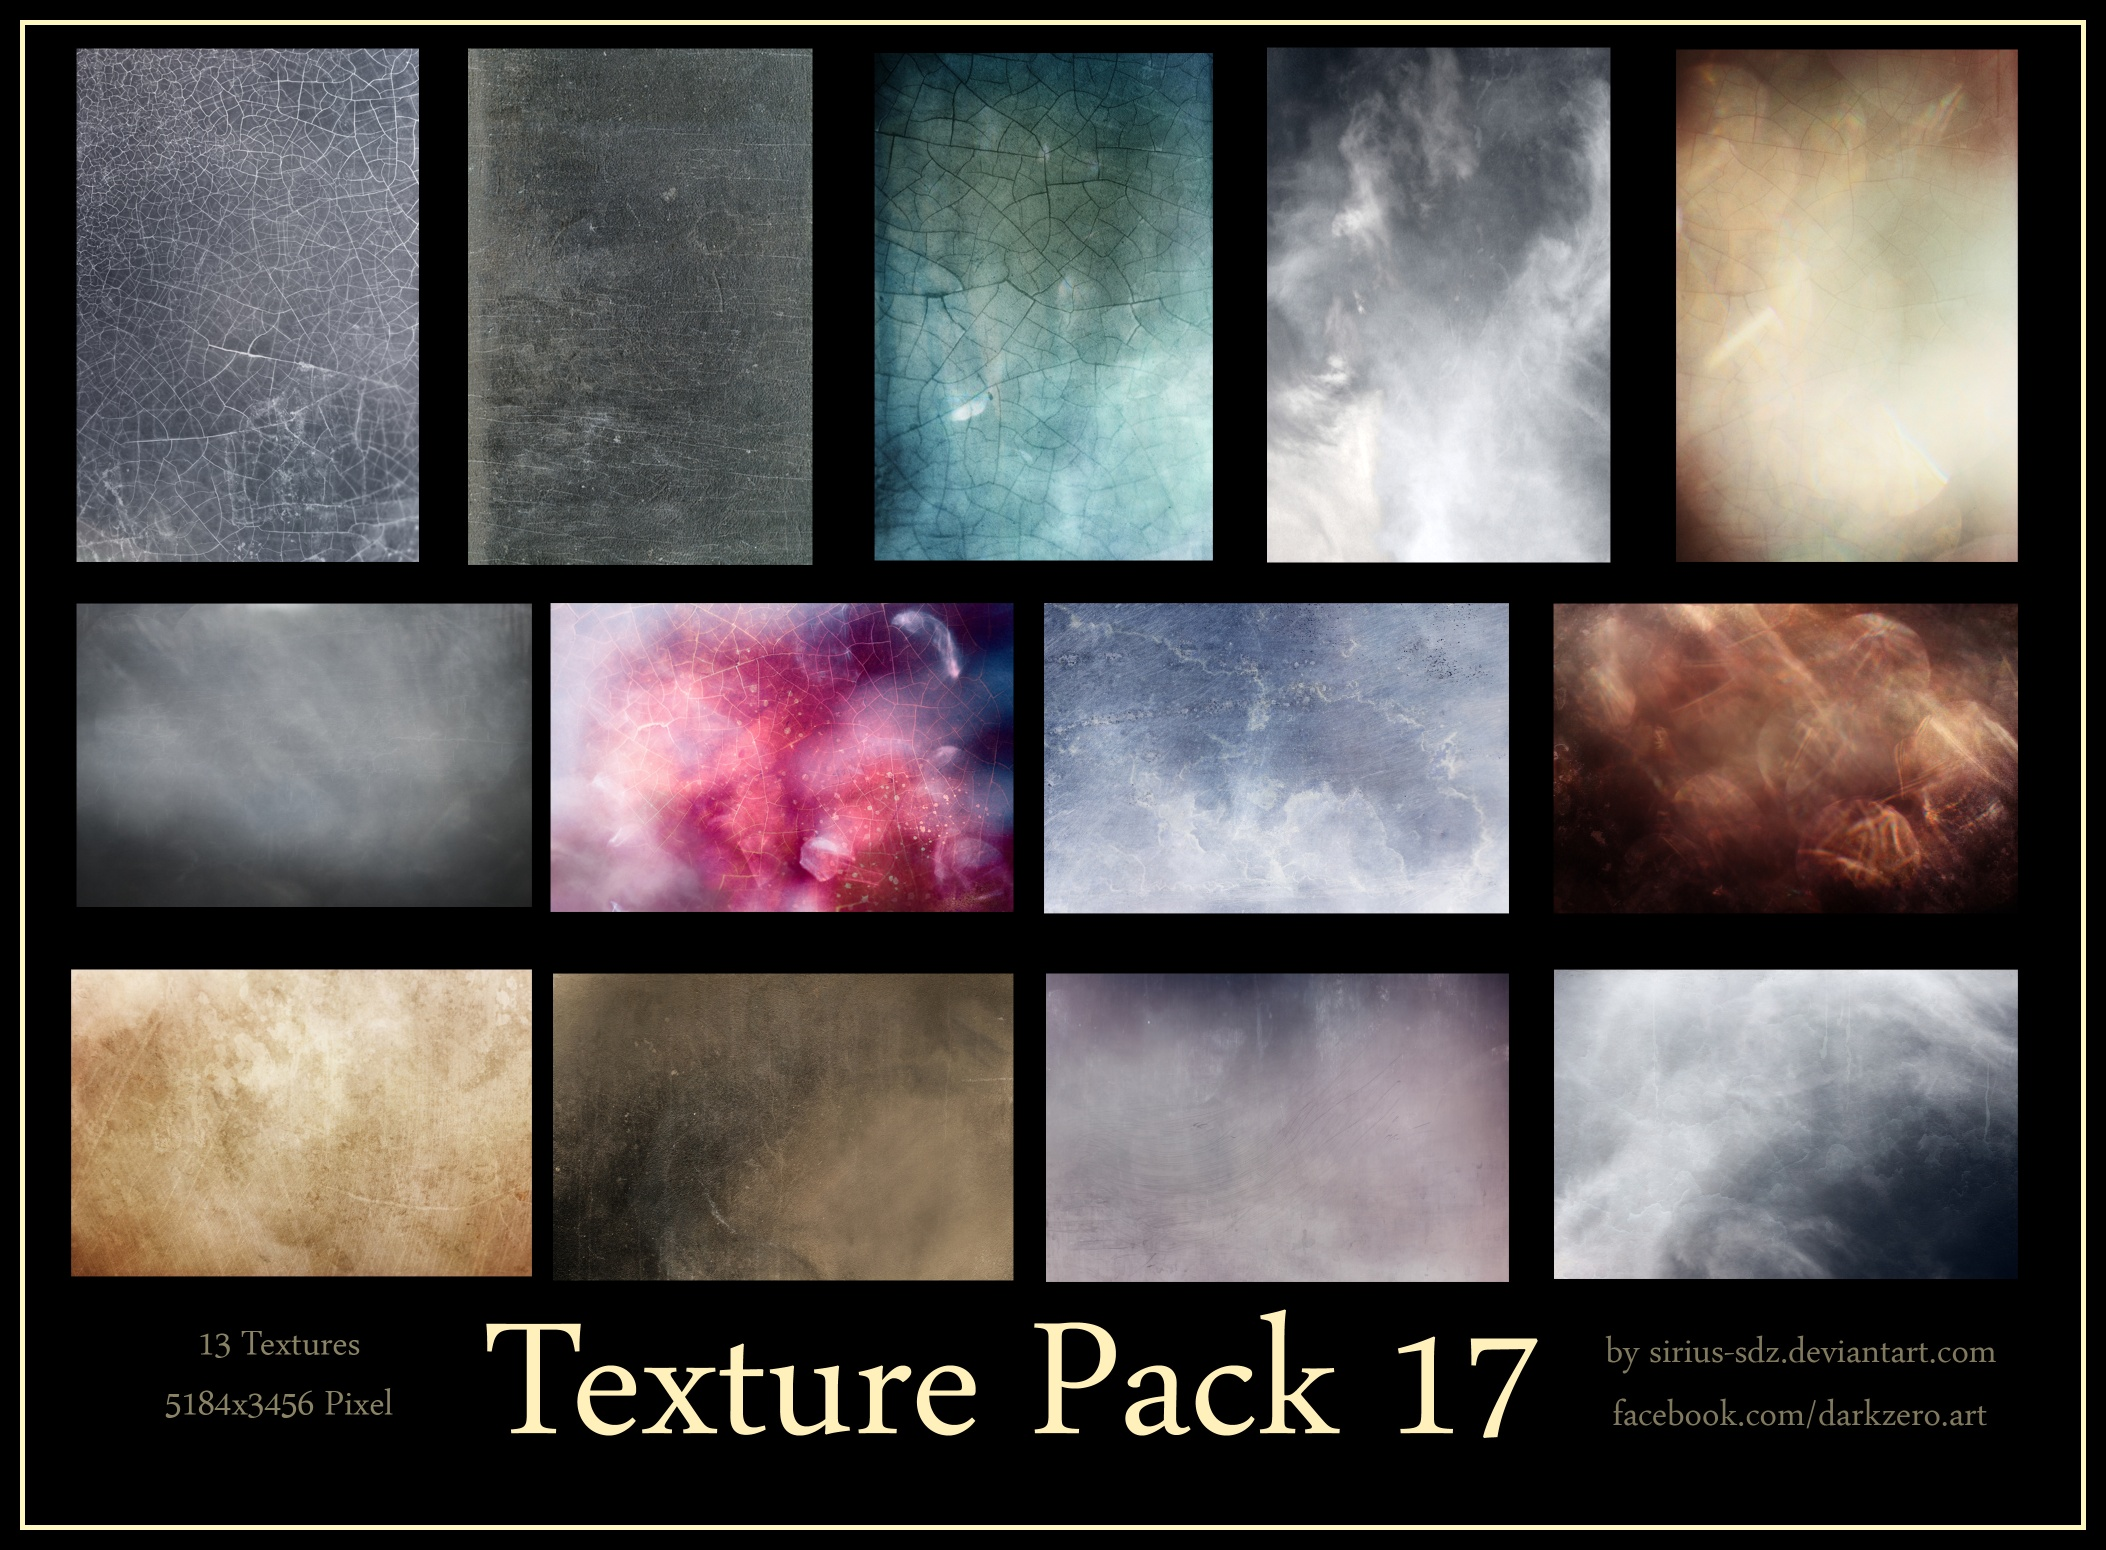 Texture Pack 17